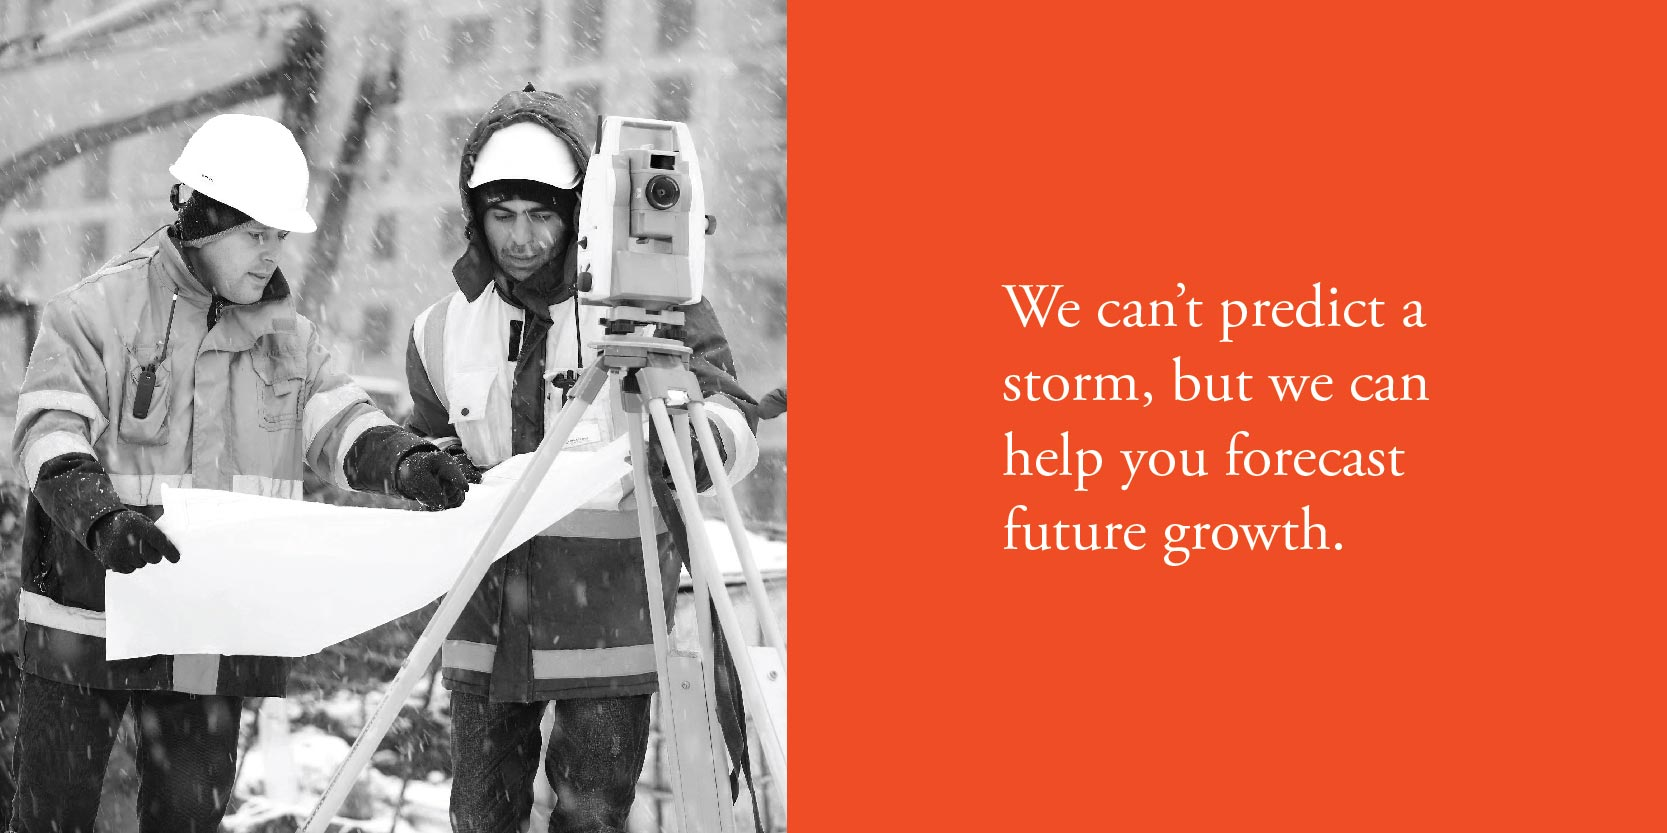 We can't predict a storm, but we can help you forecast future growth.